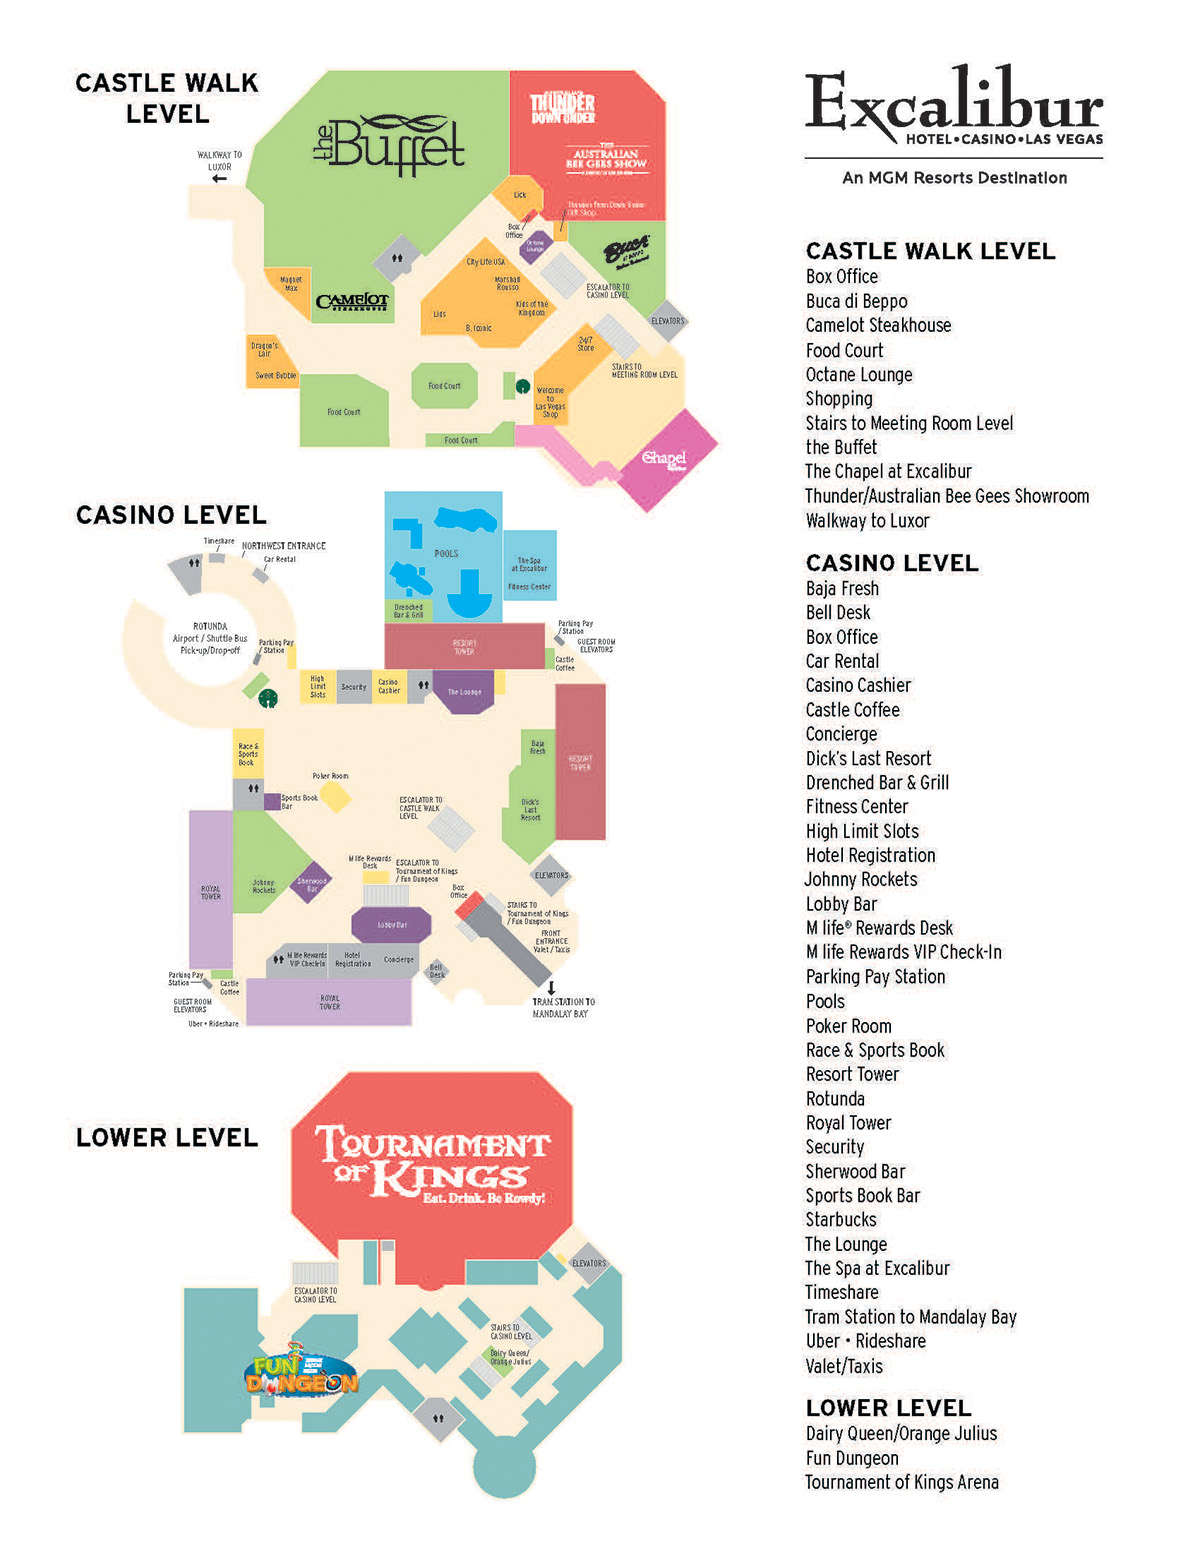 Excaliber Hotel Facility Map Las Vegas